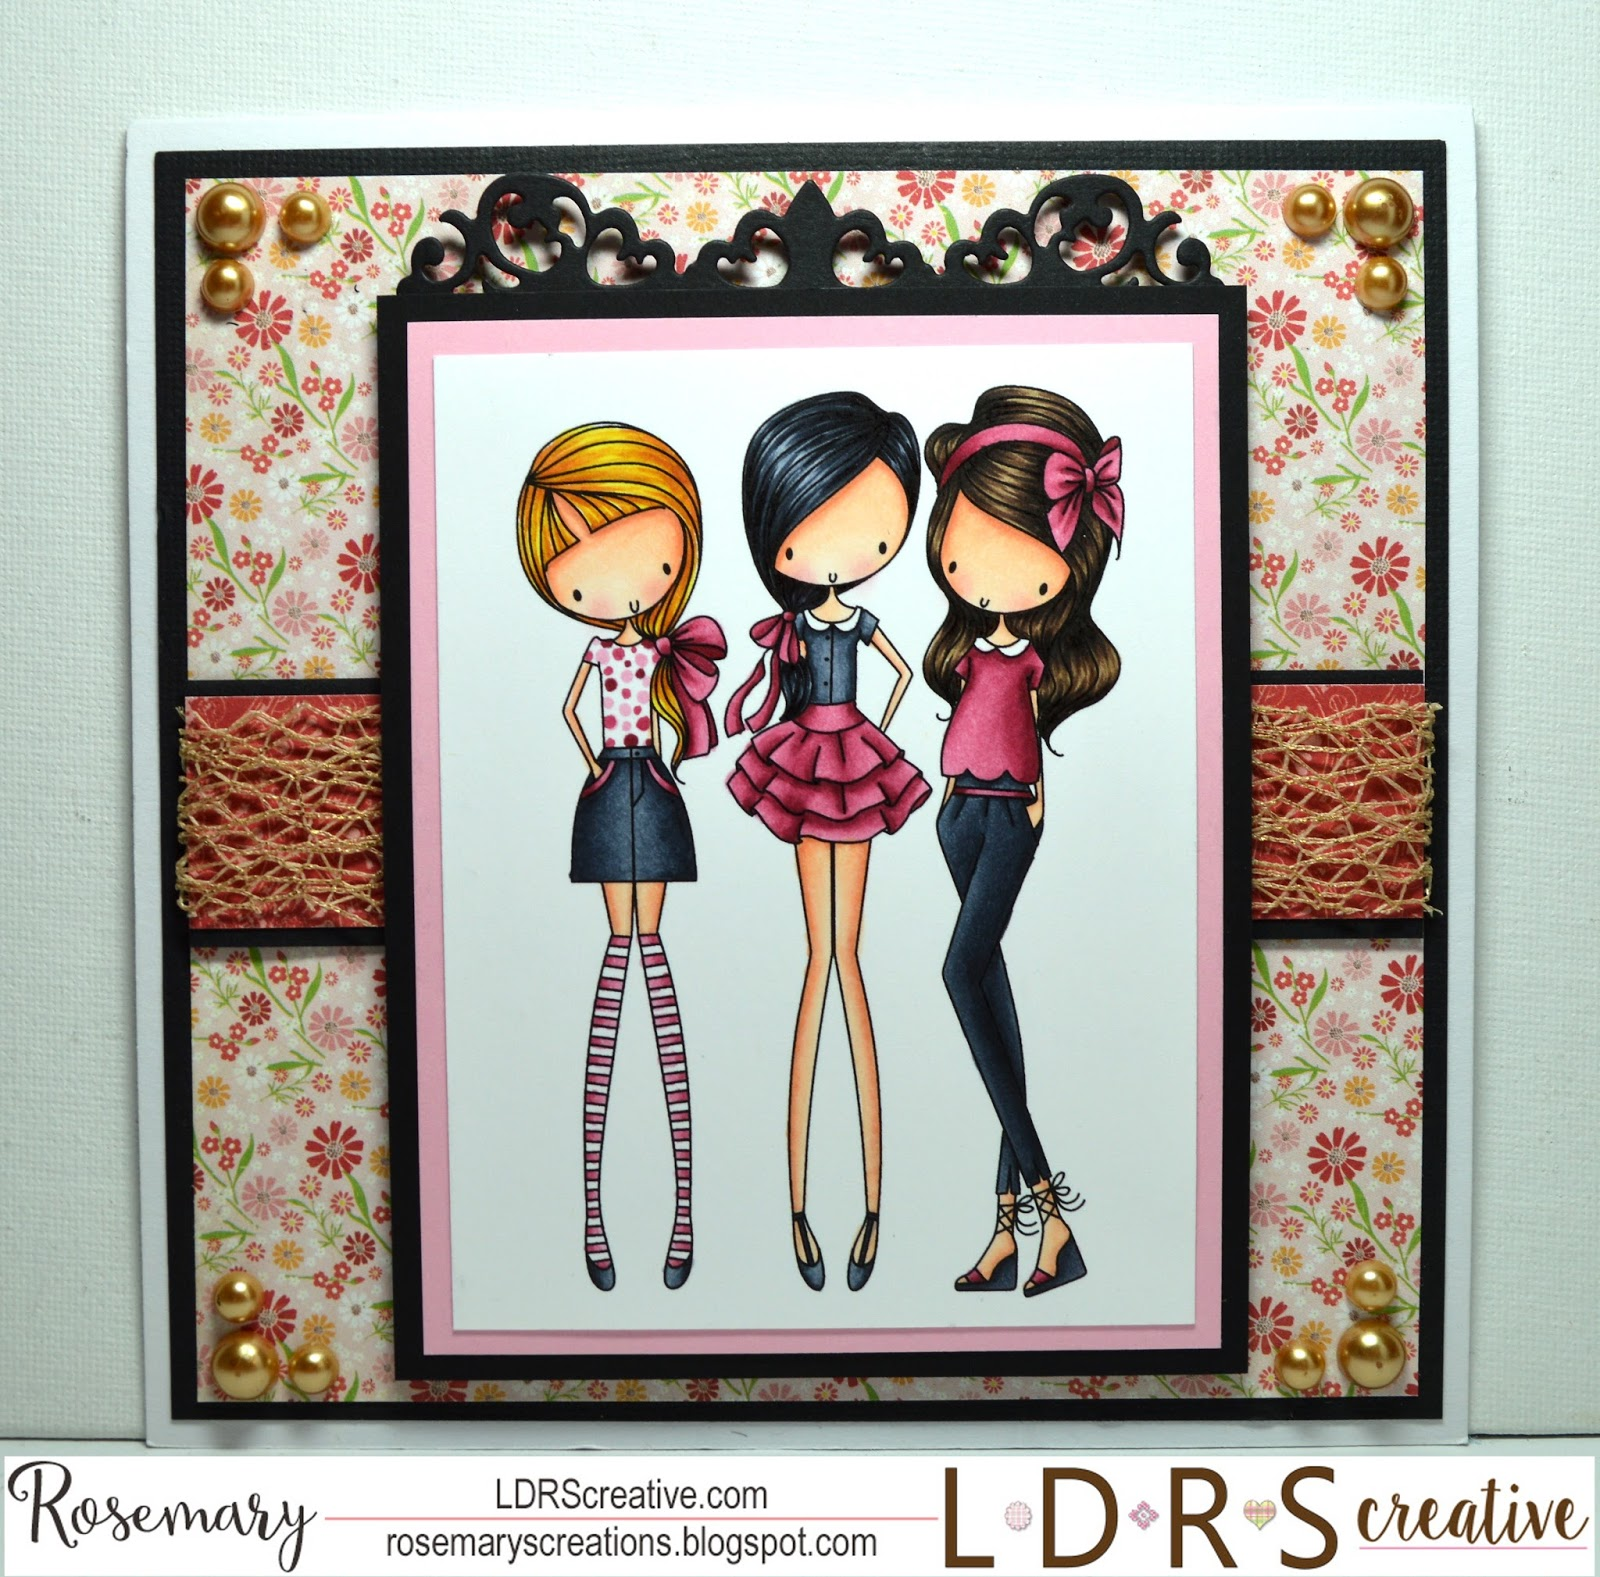 Rosemary\'s Creations: LDRS Creative~All Dressed Up Girl\'s Night Out!